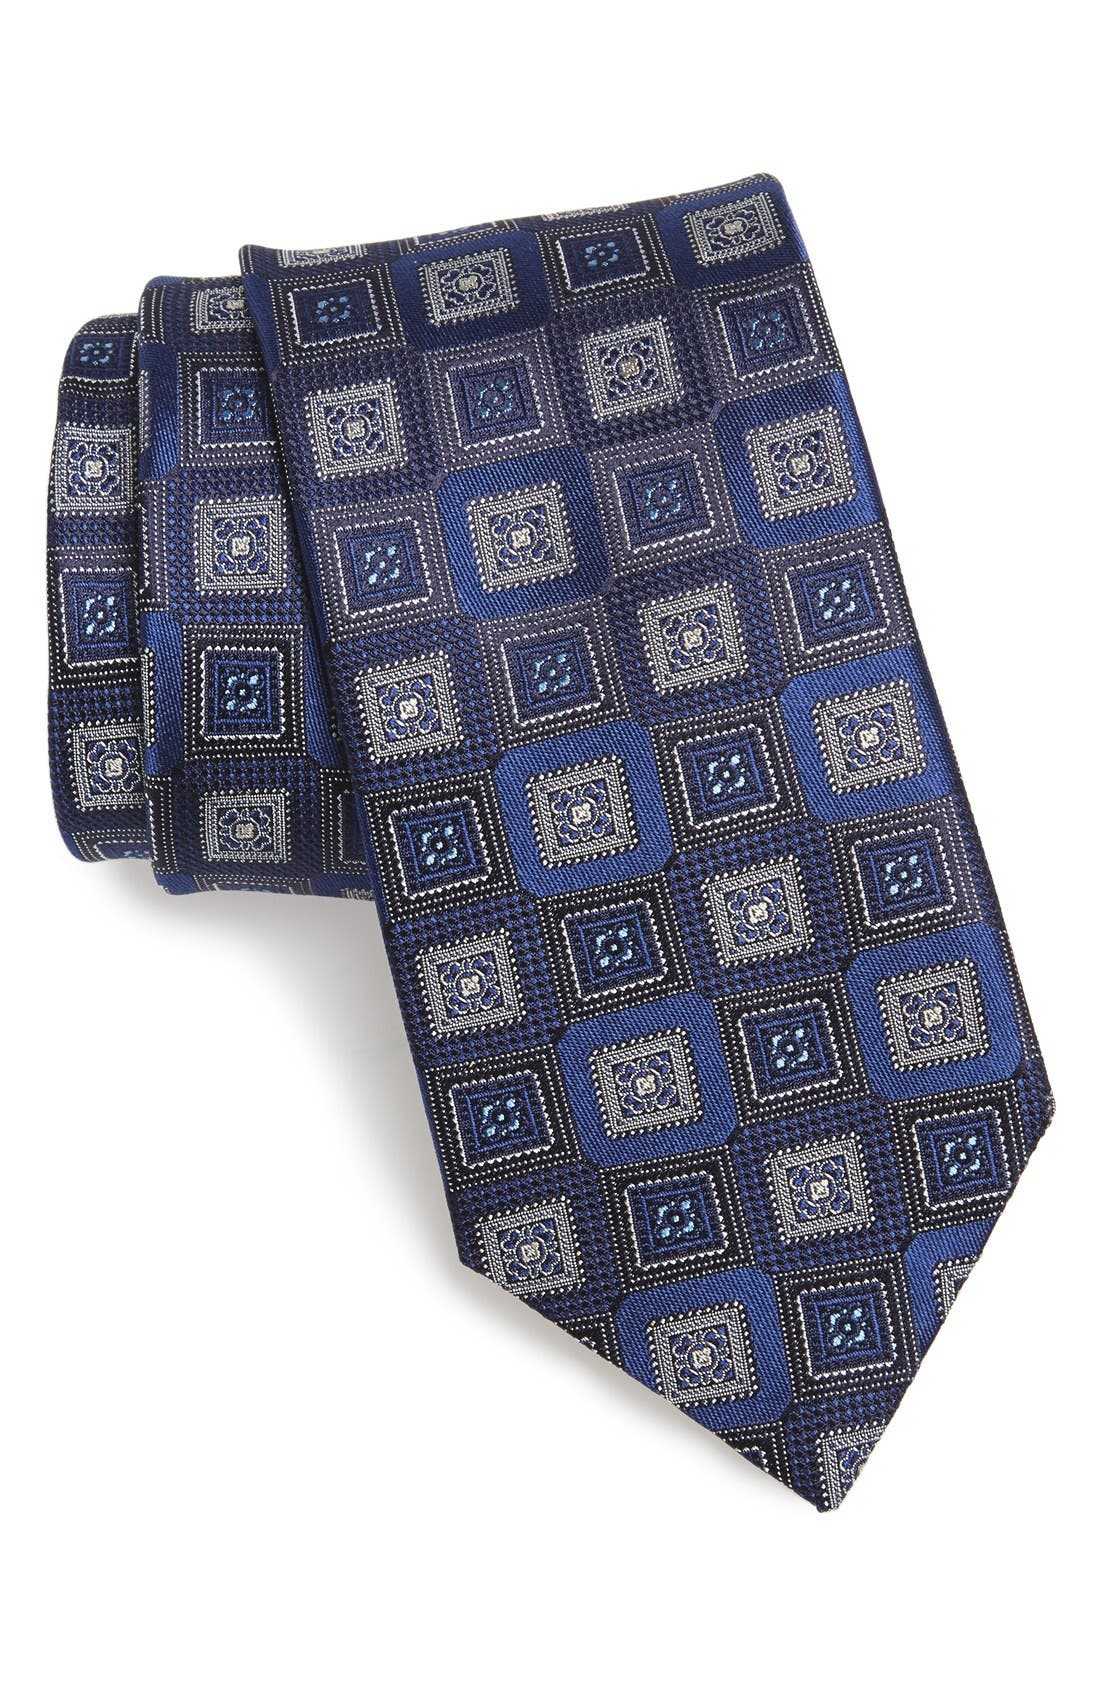 Alternate Image 1 Selected - John W. Nordstrom® 'Slash' Medallion Silk Tie